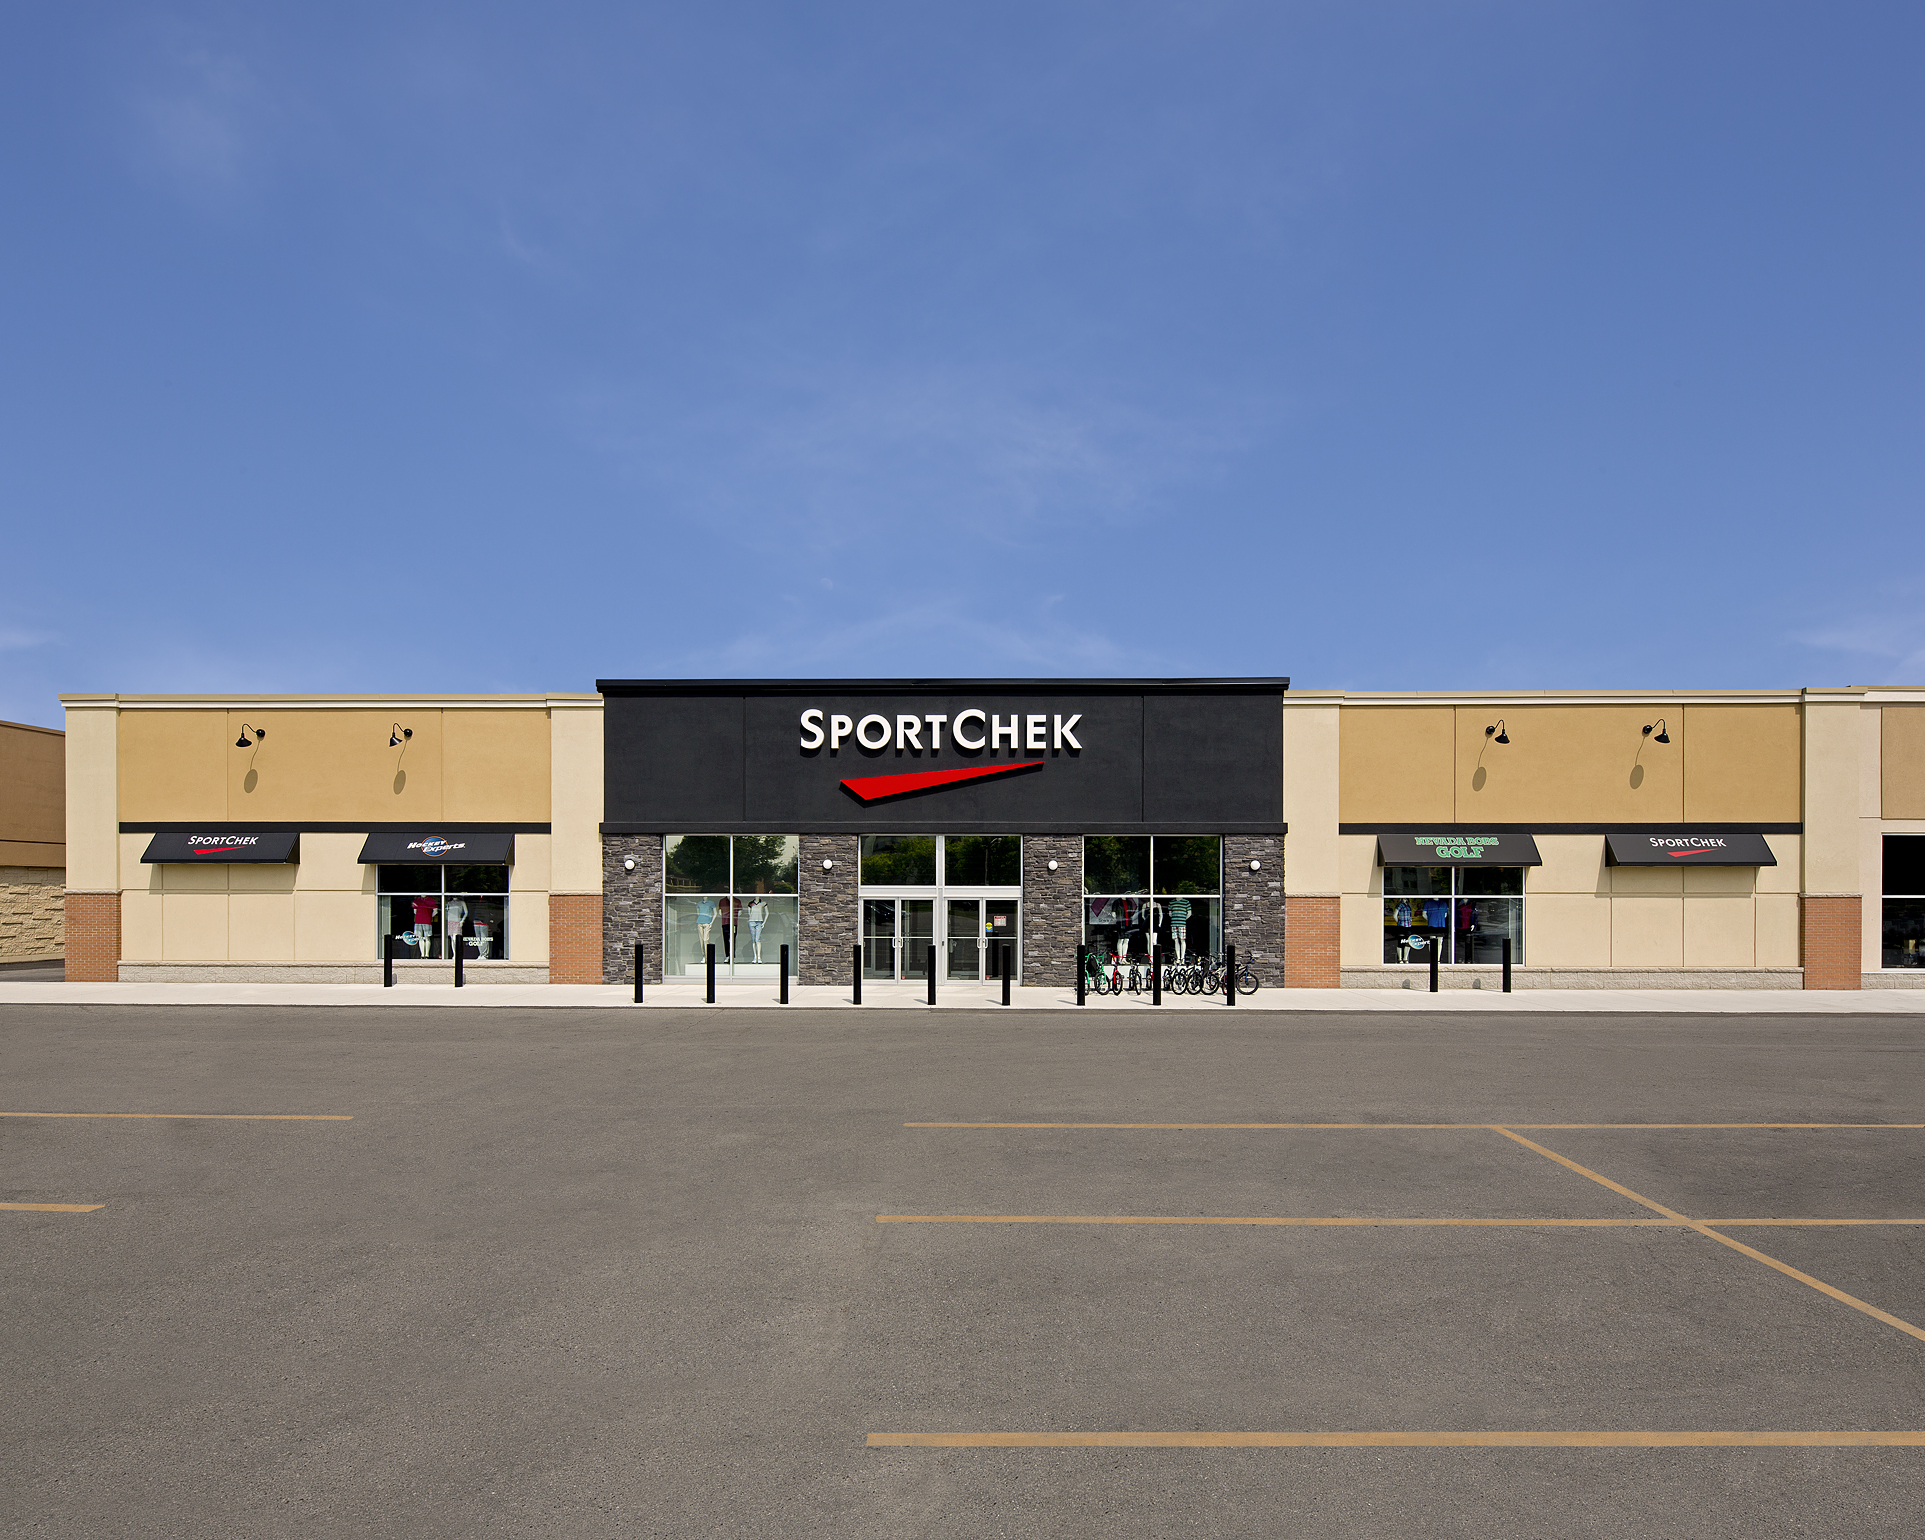 Sport Chek-20x25 size added sky and pavement